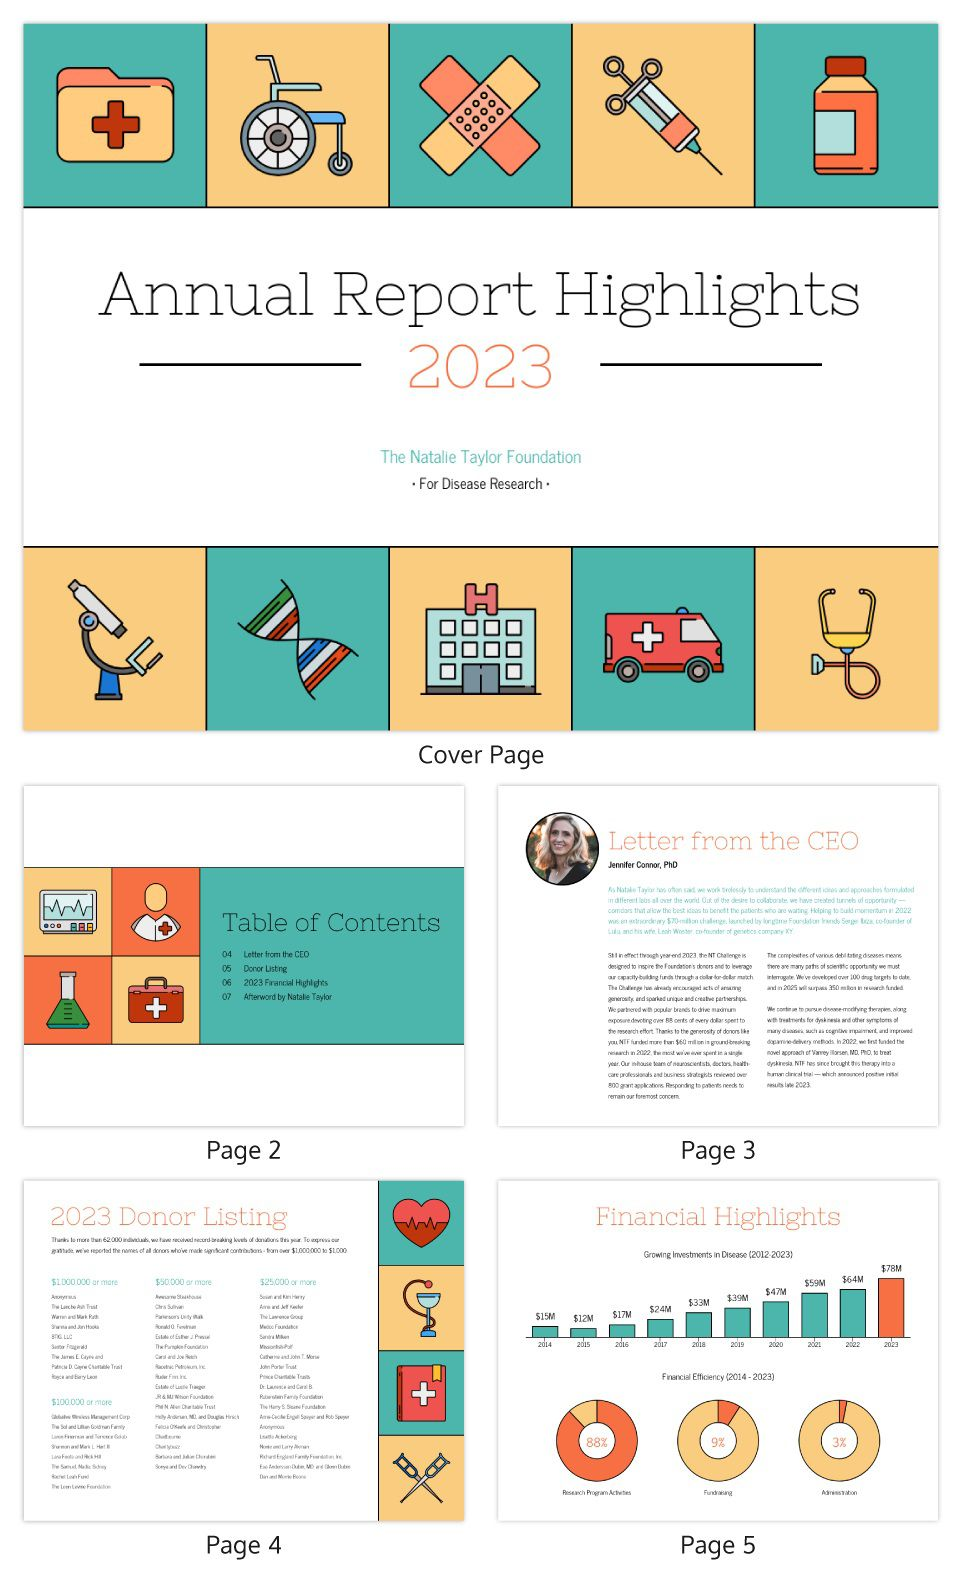 005 Wondrou Non Profit Annual Report Template High Resolution  Not For Small NonprofitFull